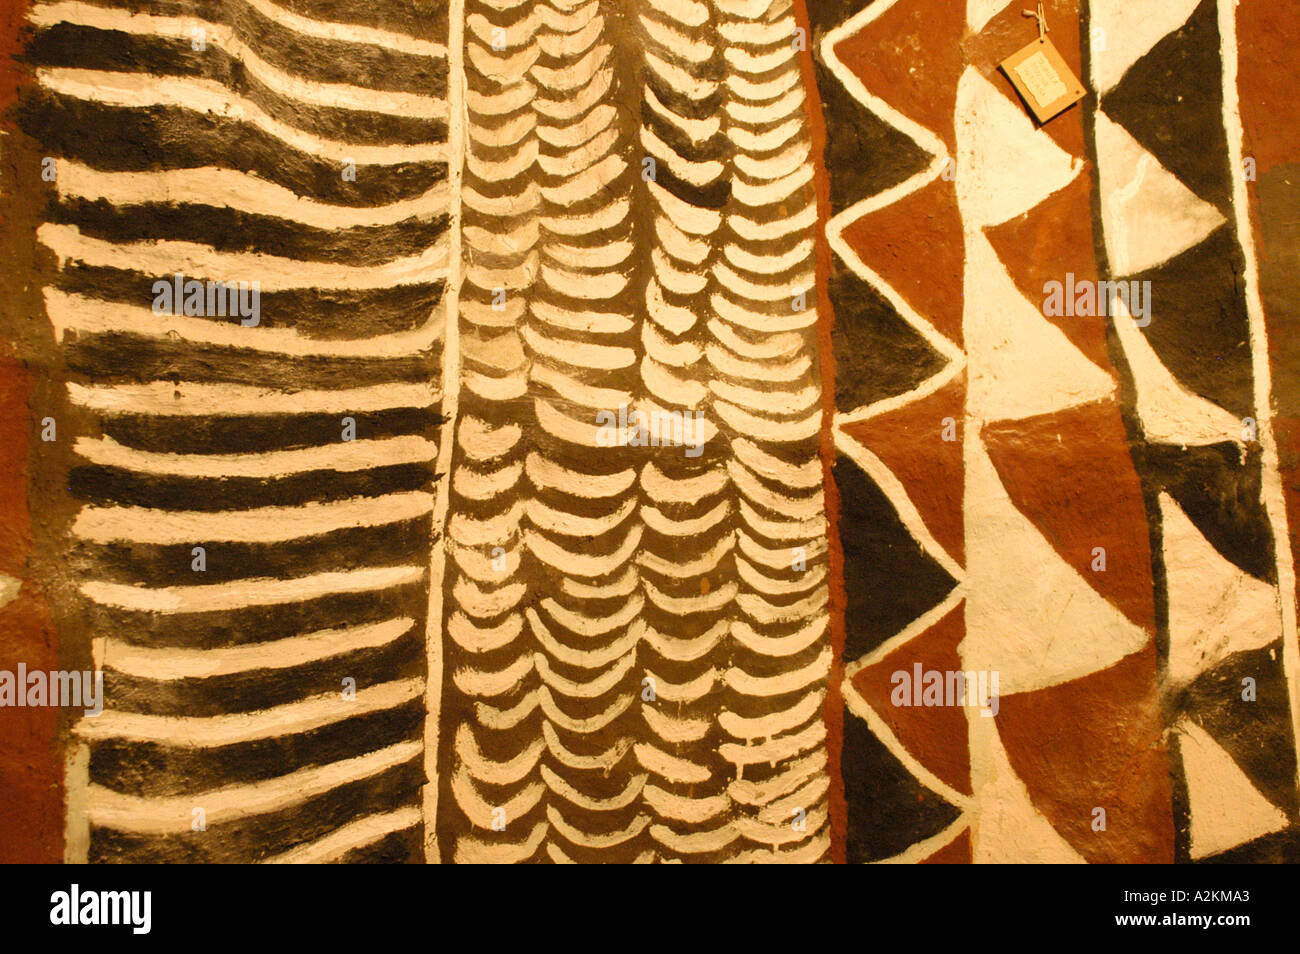 geometrical wallpaintings in a traditional hut of the Bemba peopleStock Photo